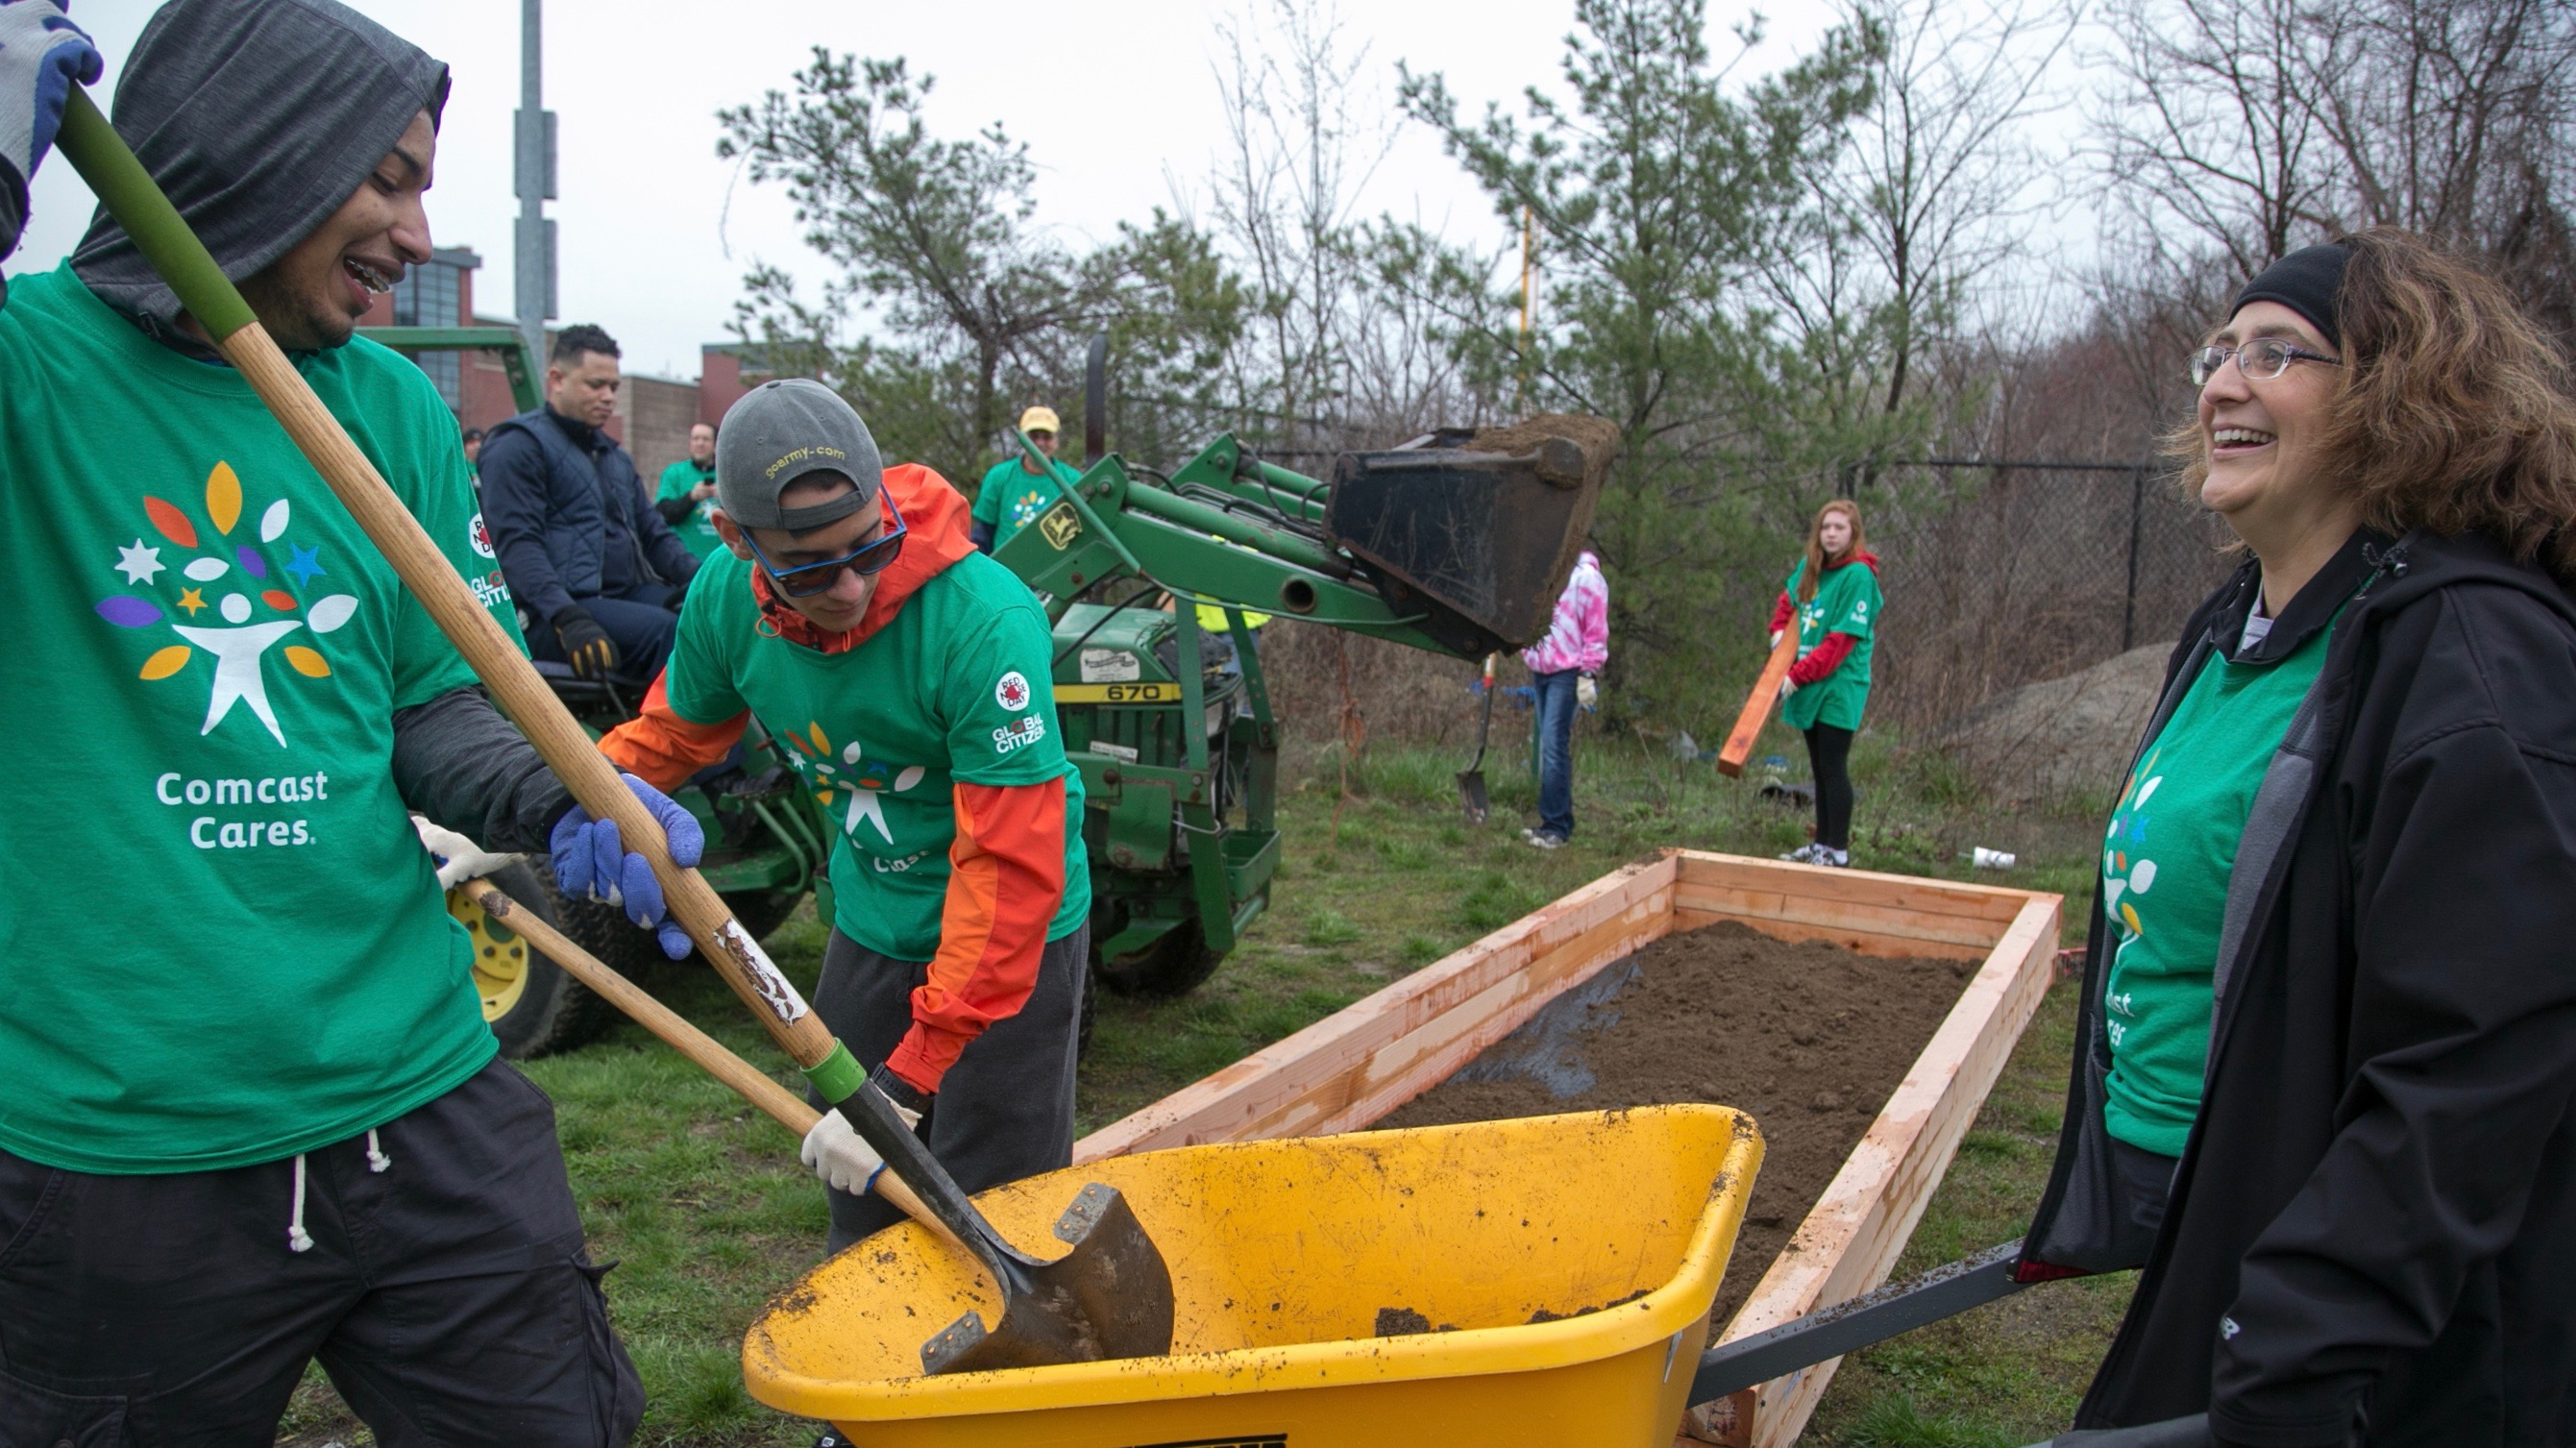 Comcast Cares Day Yardwork